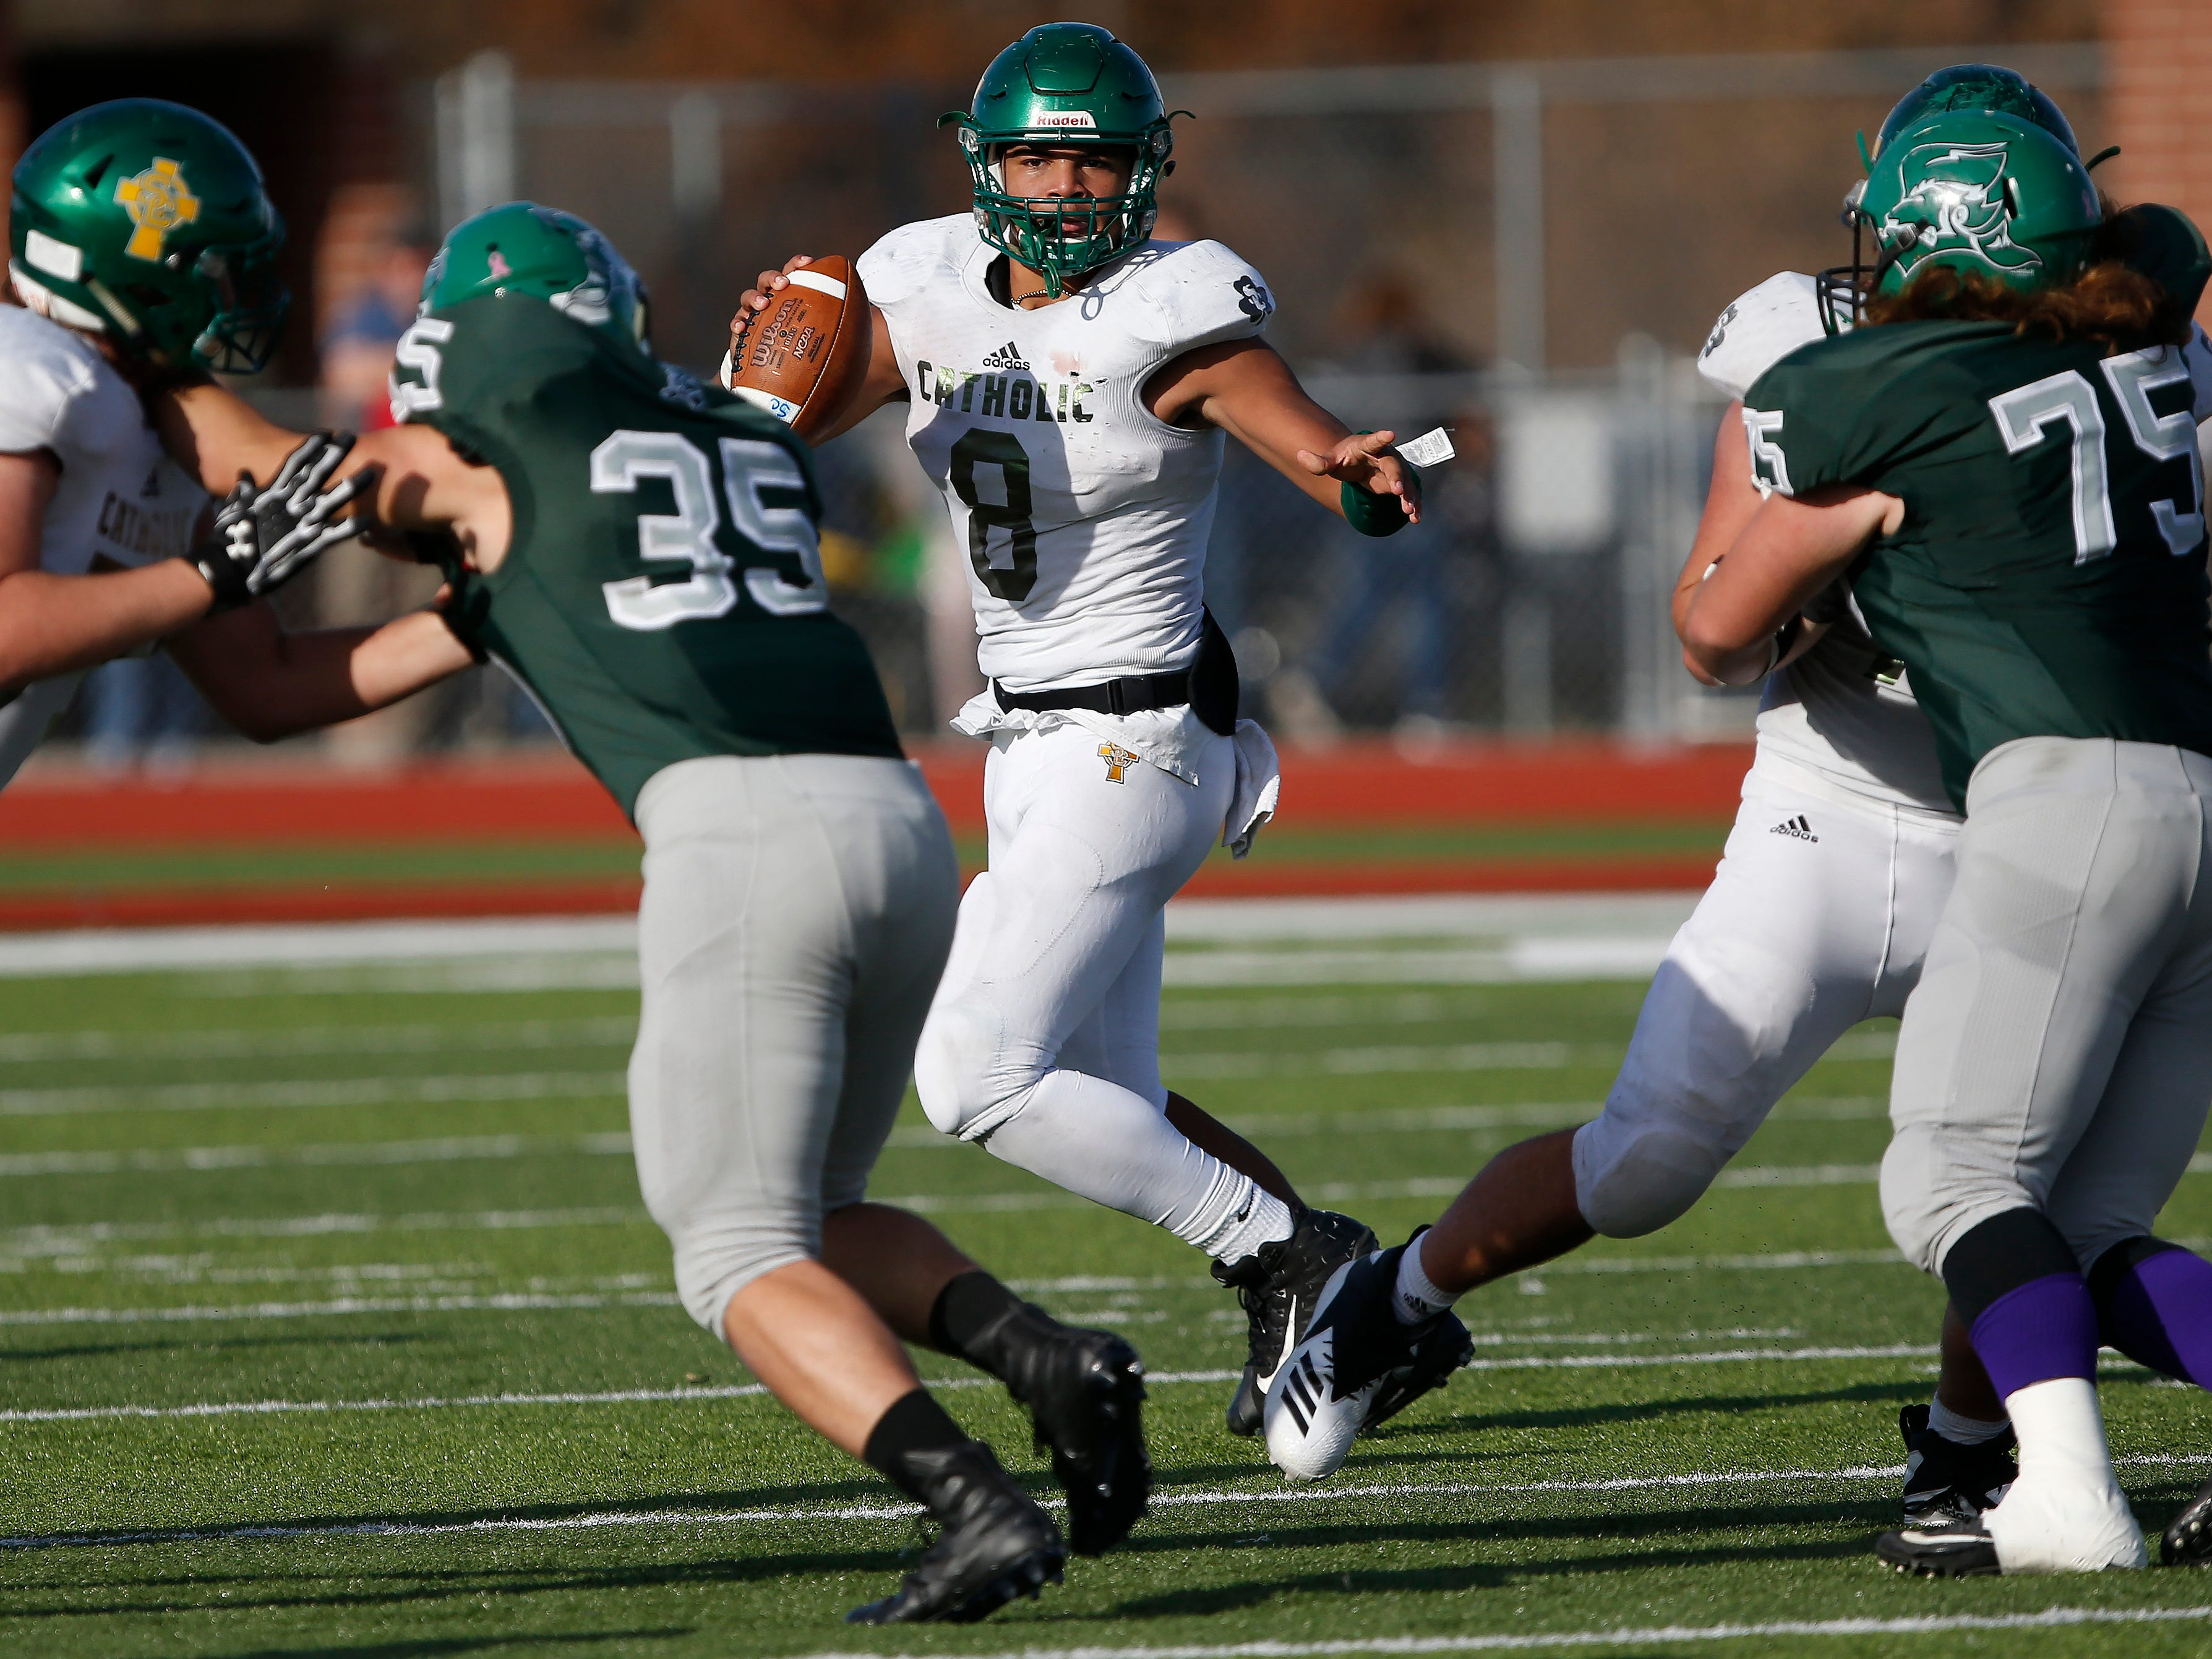 Springfield Catholic lost 26-18 in the Class 3 Quarterfinal game against Mount Vernon at Mount Vernon High School on Saturday, Nov. 17, 2018.